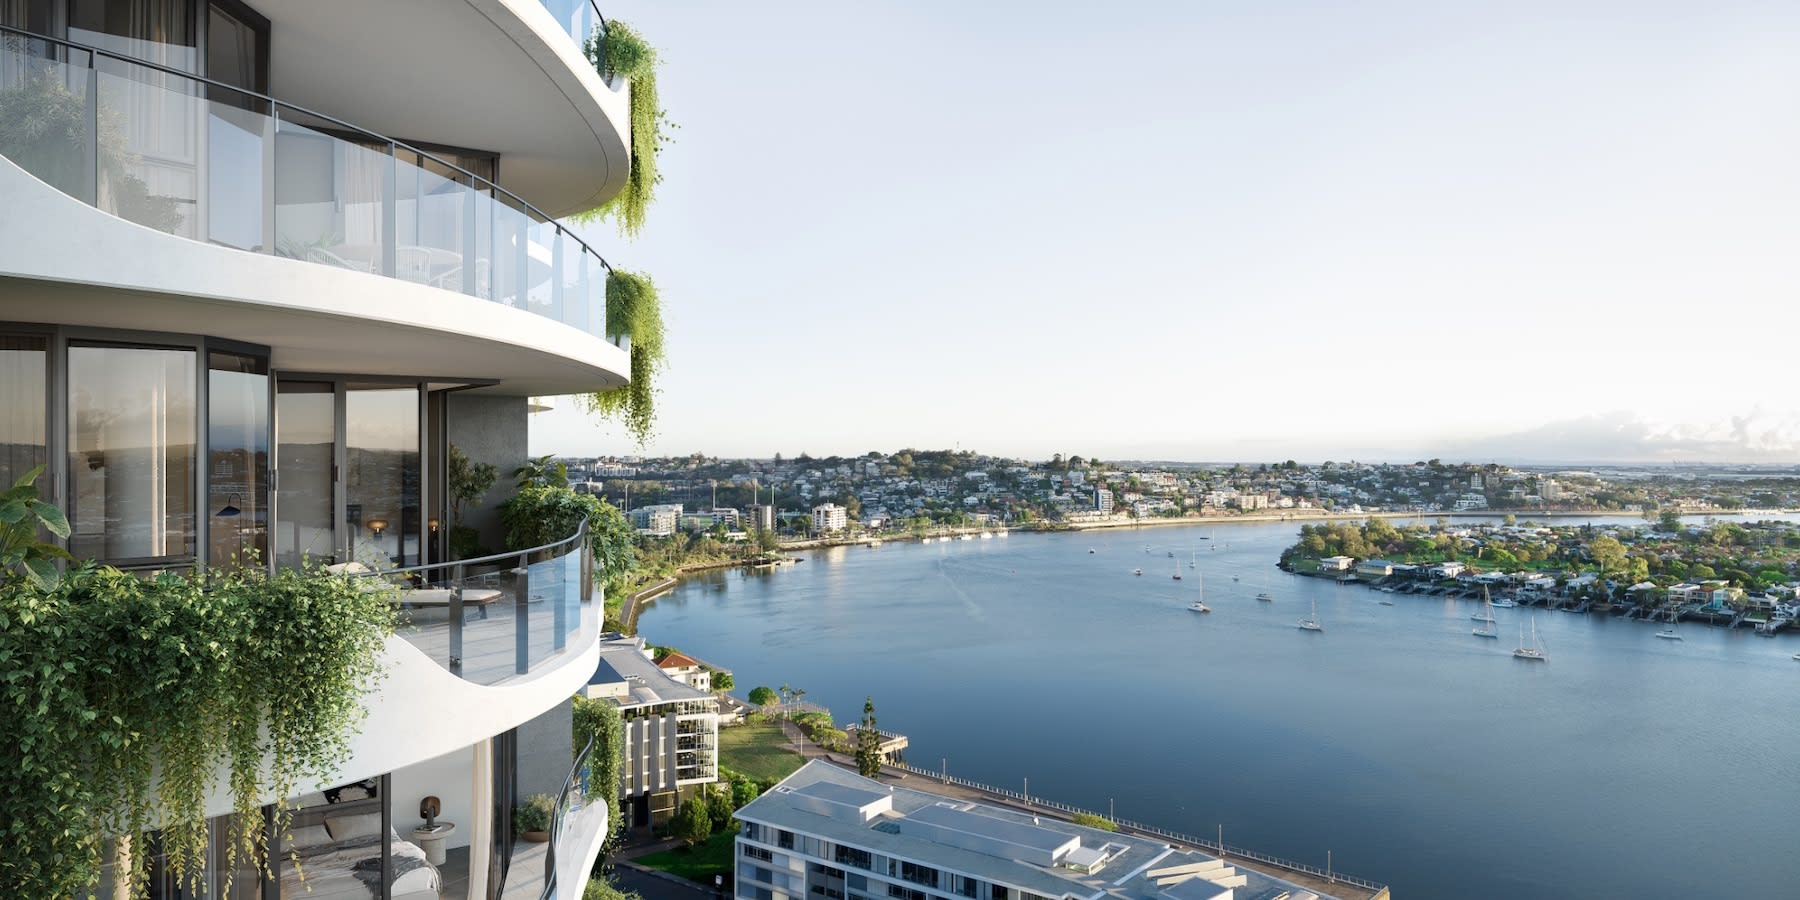 Walking tour: What's within walking distance from Quay Waterfront Newstead?